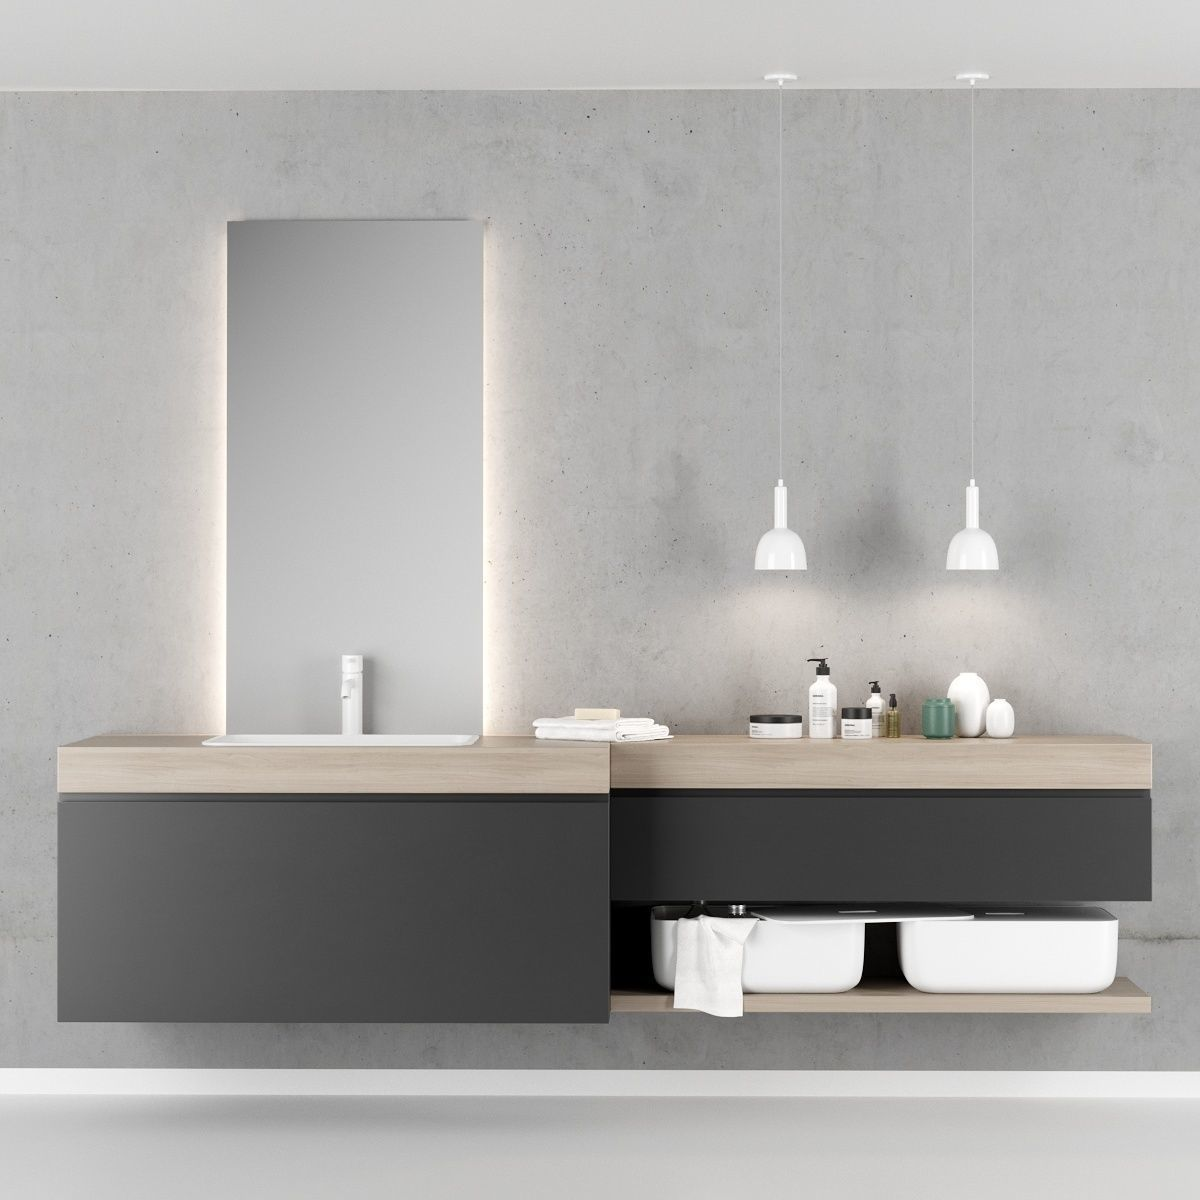 Scavolini QI Bathroom furniture set 2 3D model | CGTrader